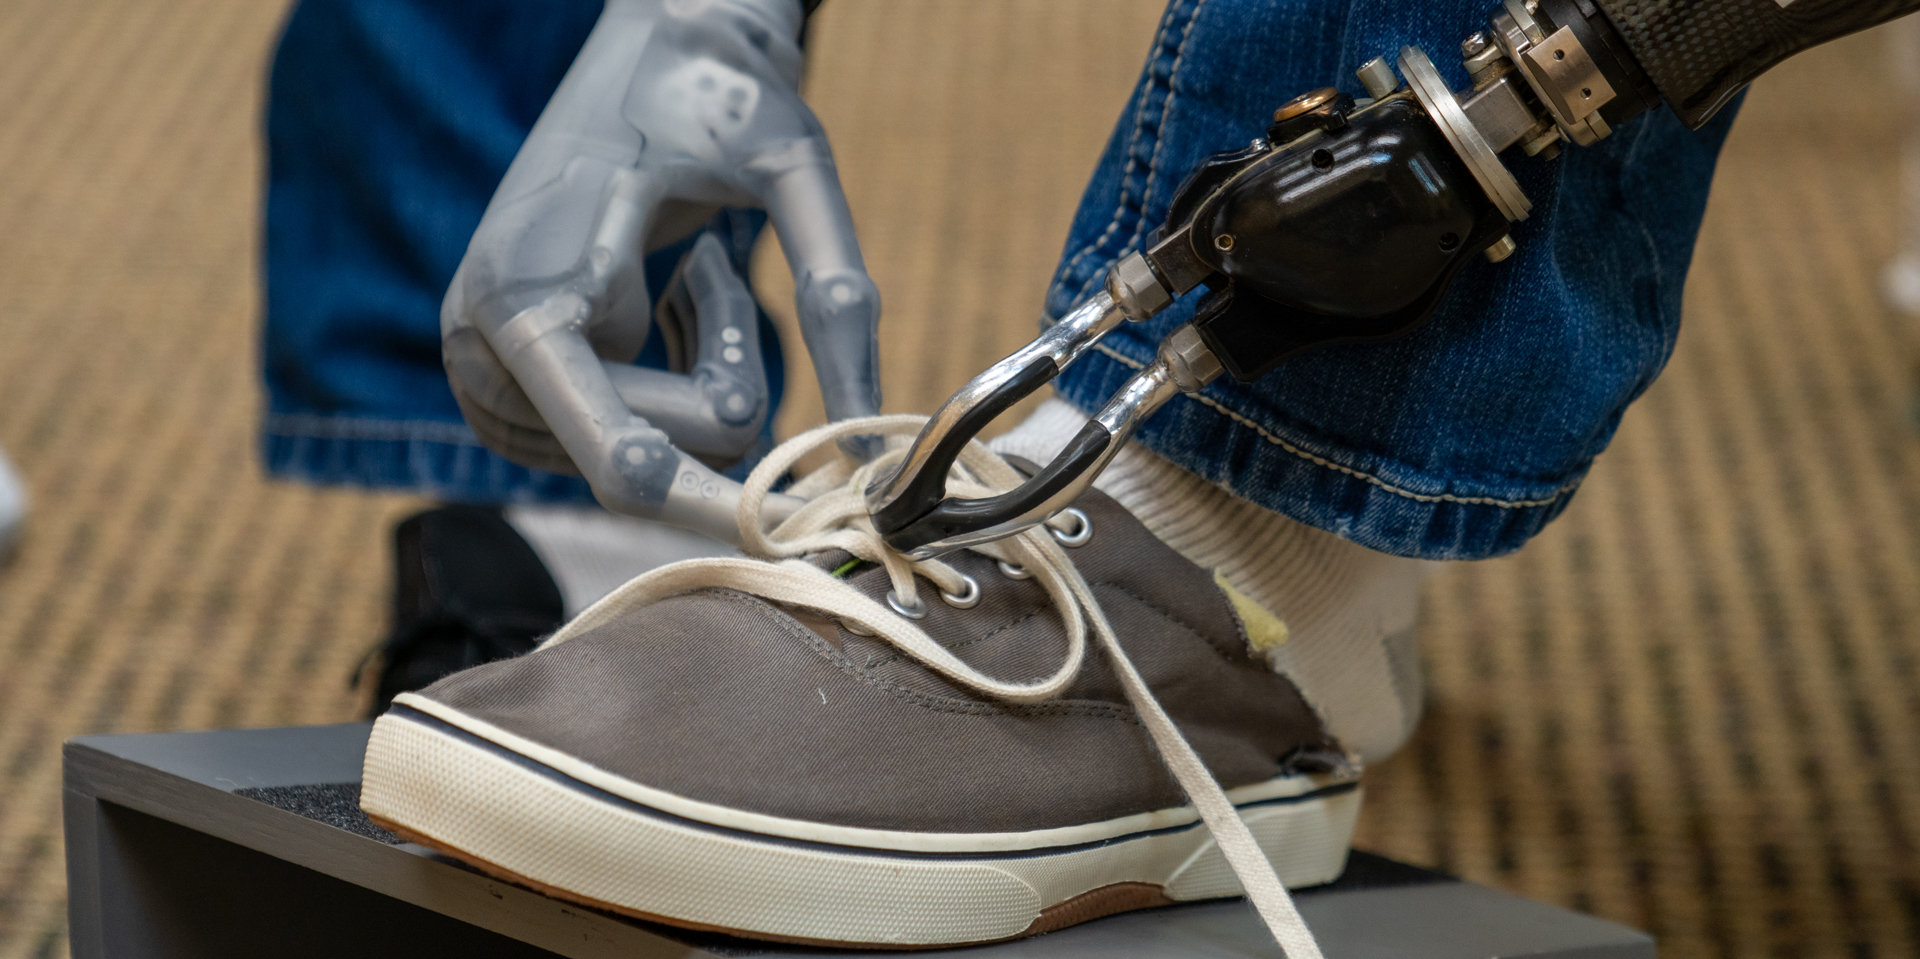 Tying Shoes as an ADL in the CAPPFUL